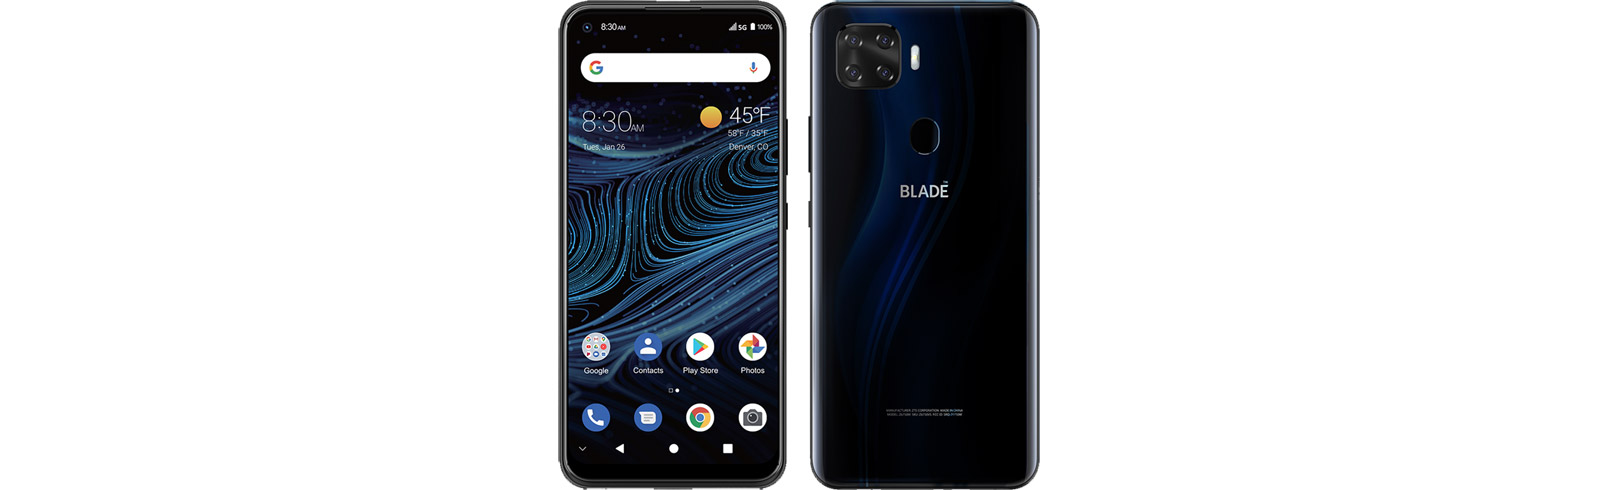 ZTE Blade X1 5G goes official with a quad AI camera, 6.5-inch display, and DTS:X Ultra audio